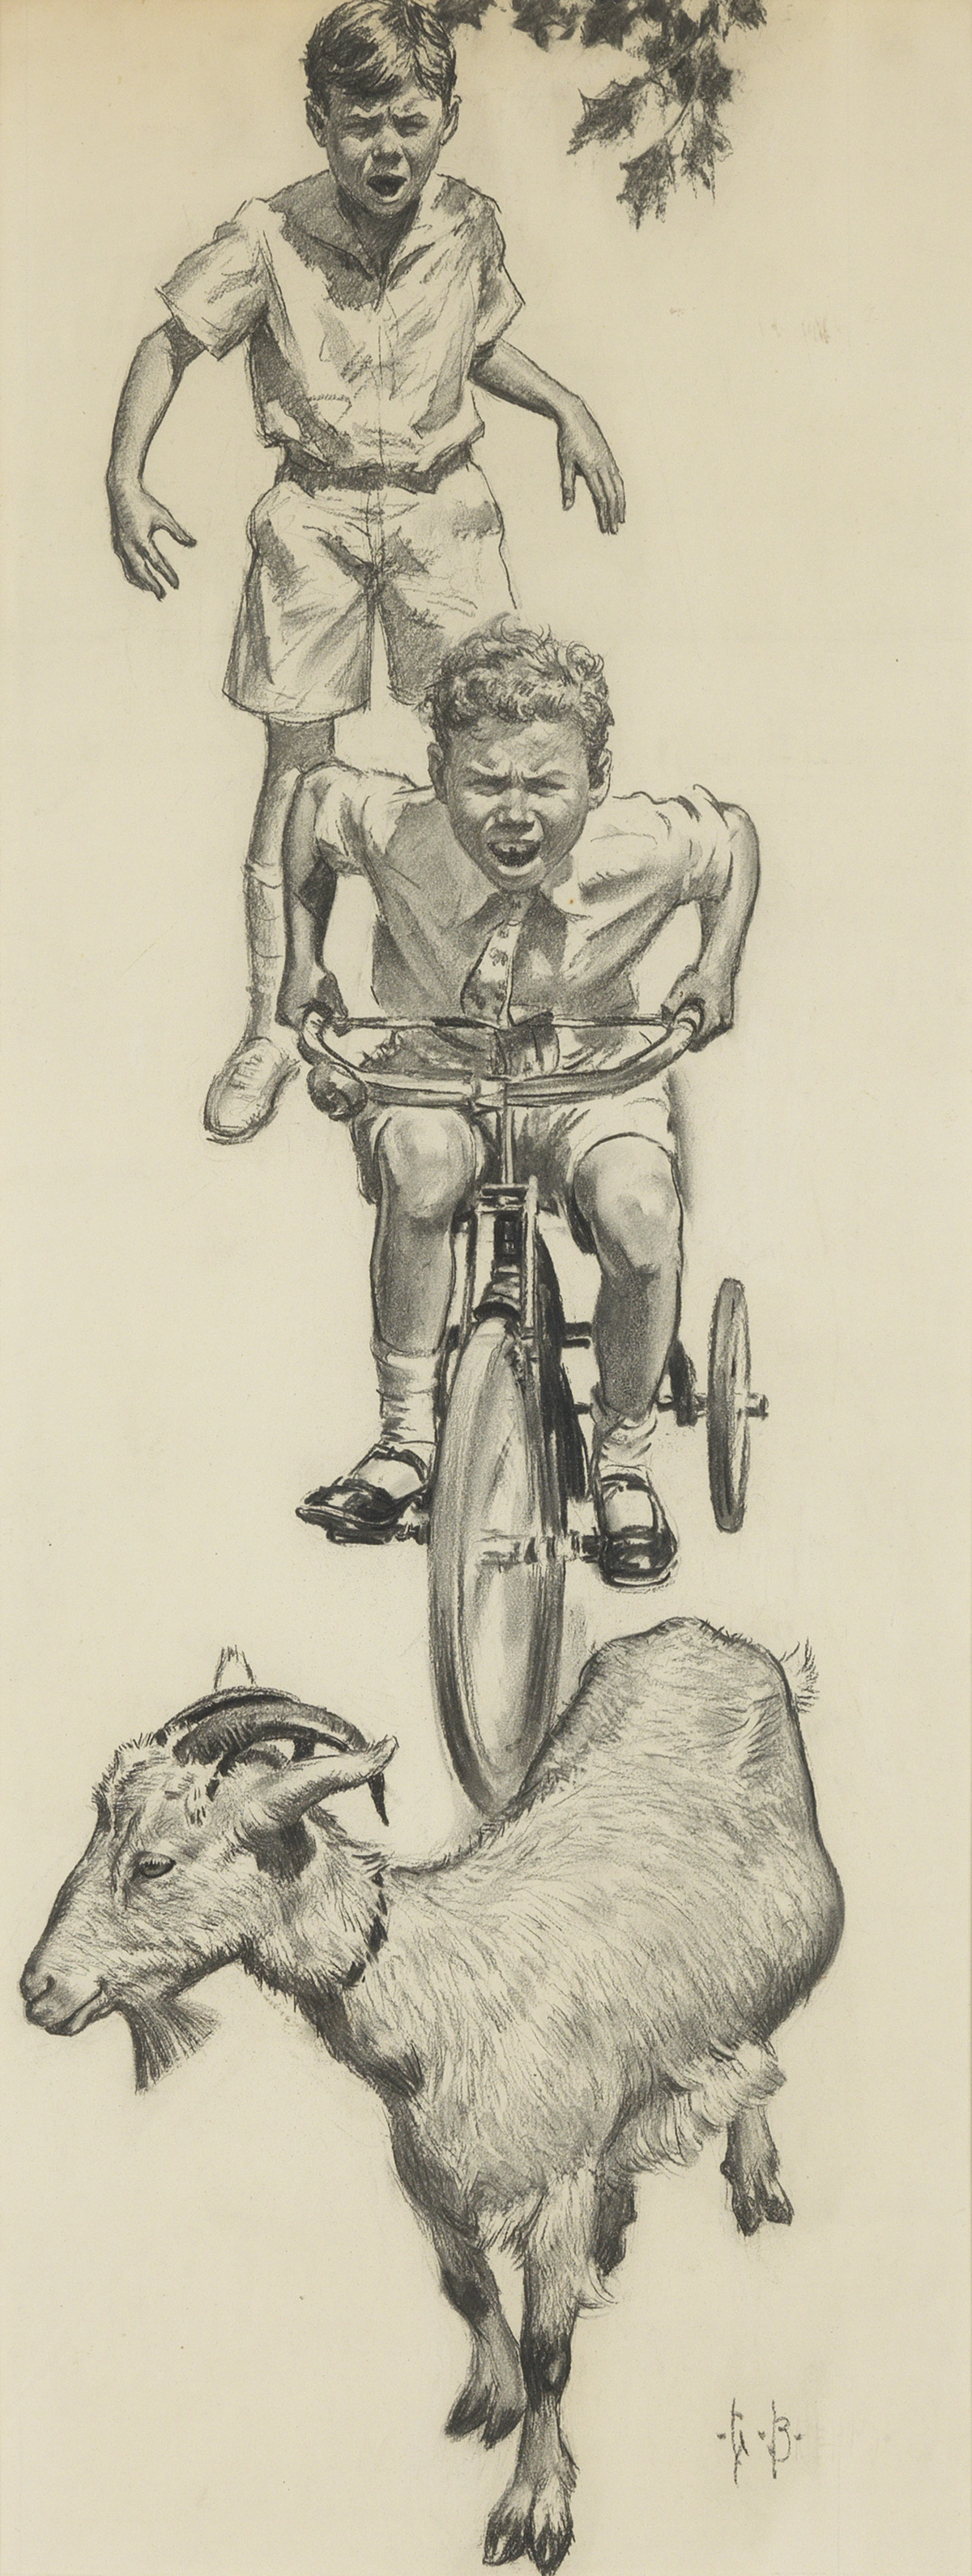 CHILDRENS-SATURDAY-EVENING-POST-GEORGE-BREHM-Shoo-Orvie-cried-pedaling-fiercely-Shoo-you-bad-ole-goat-you-He-chased-Pansy-e